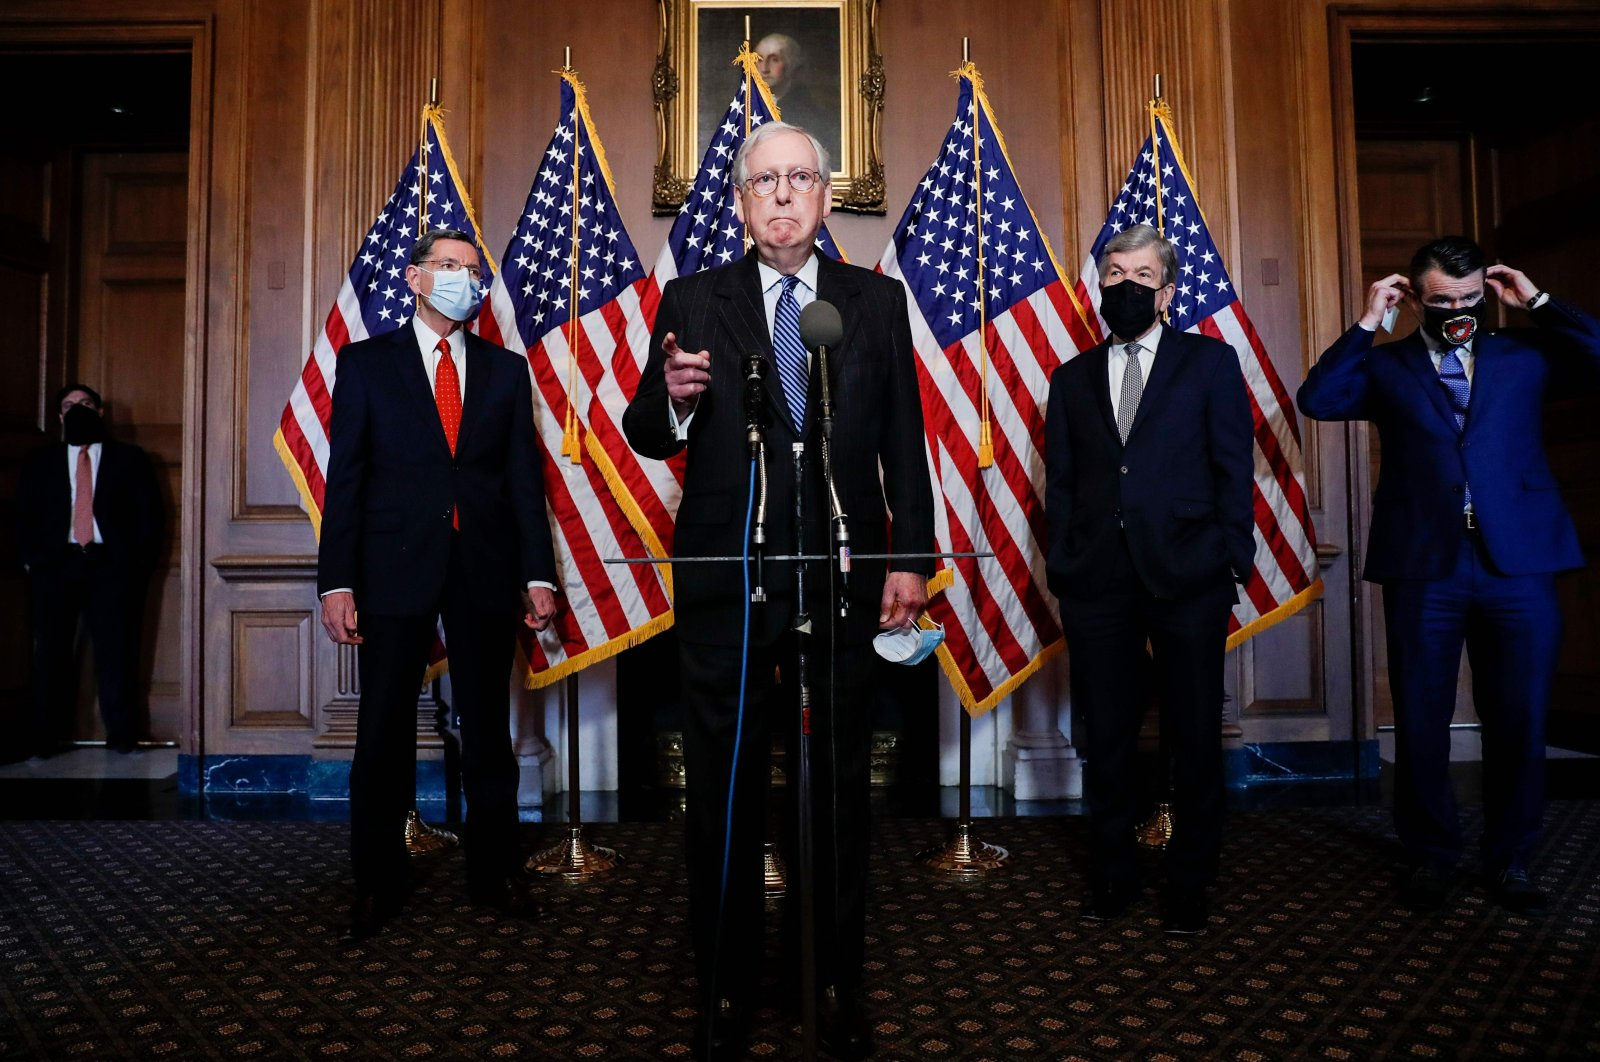 U.S. Senate Majority Leader Mitch McConnell is flanked by Senators John Barrasso and John Thune as he speaks during a news conference with other Senate Republicans at the U.S. Capitol in Washington, DC, on Dec. 15, 2020. (AFP Photo)